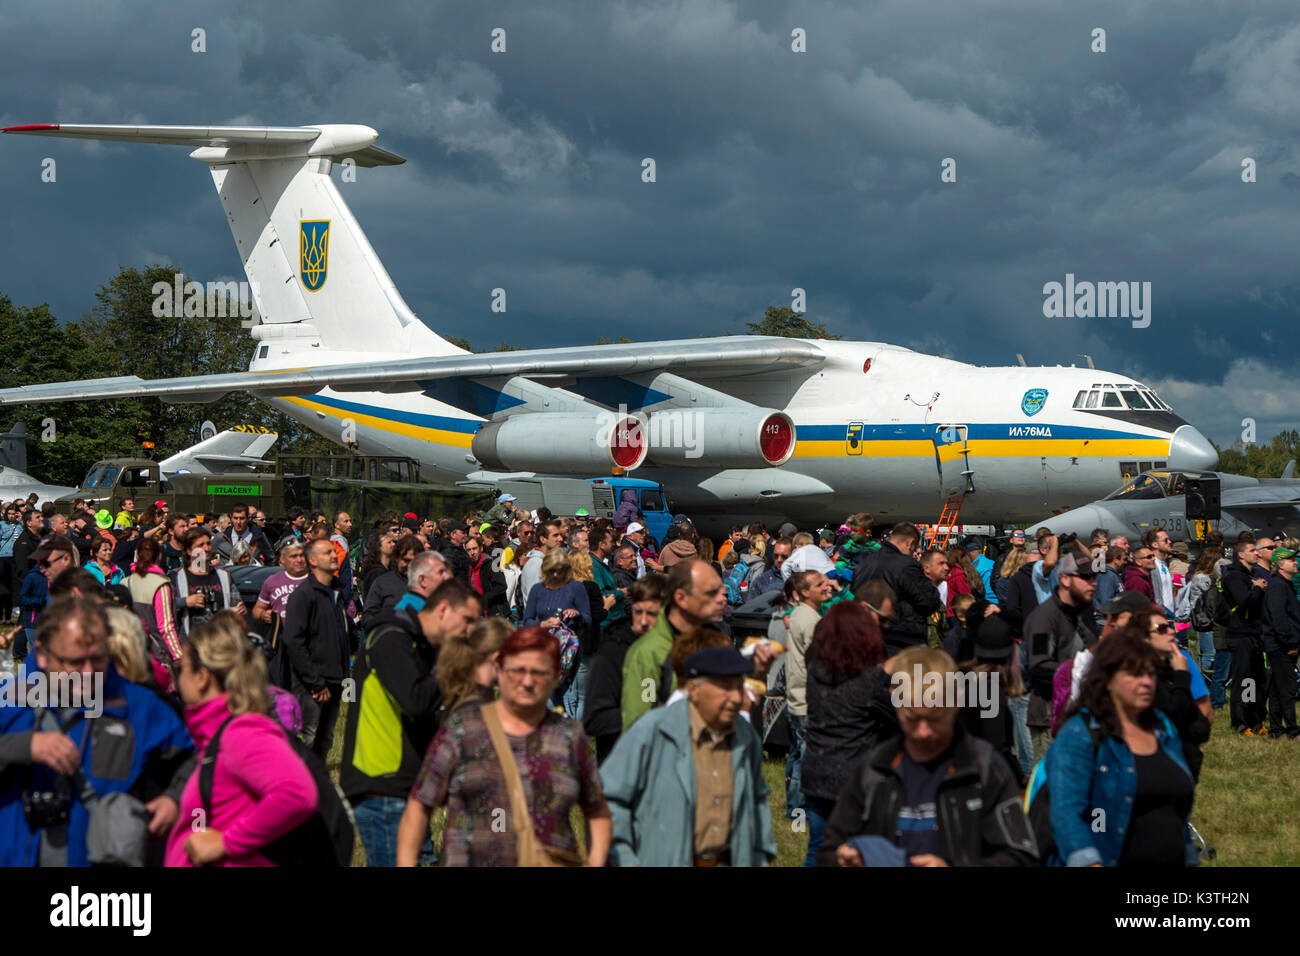 Hradec Kralove, Czech Republic. 02nd Sep, 2017. At the former army airport in Hradec Kralove there was started two-days air show named 24th Czech International Air Fest - CIAF 2017, in Czech Republic, on September 2, 2017. On the photo is seen a strategic airlifter Ilyushin Il-76 from Ukraine. Credit: David Tanecek/CTK Photo/Alamy Live News - Stock Image